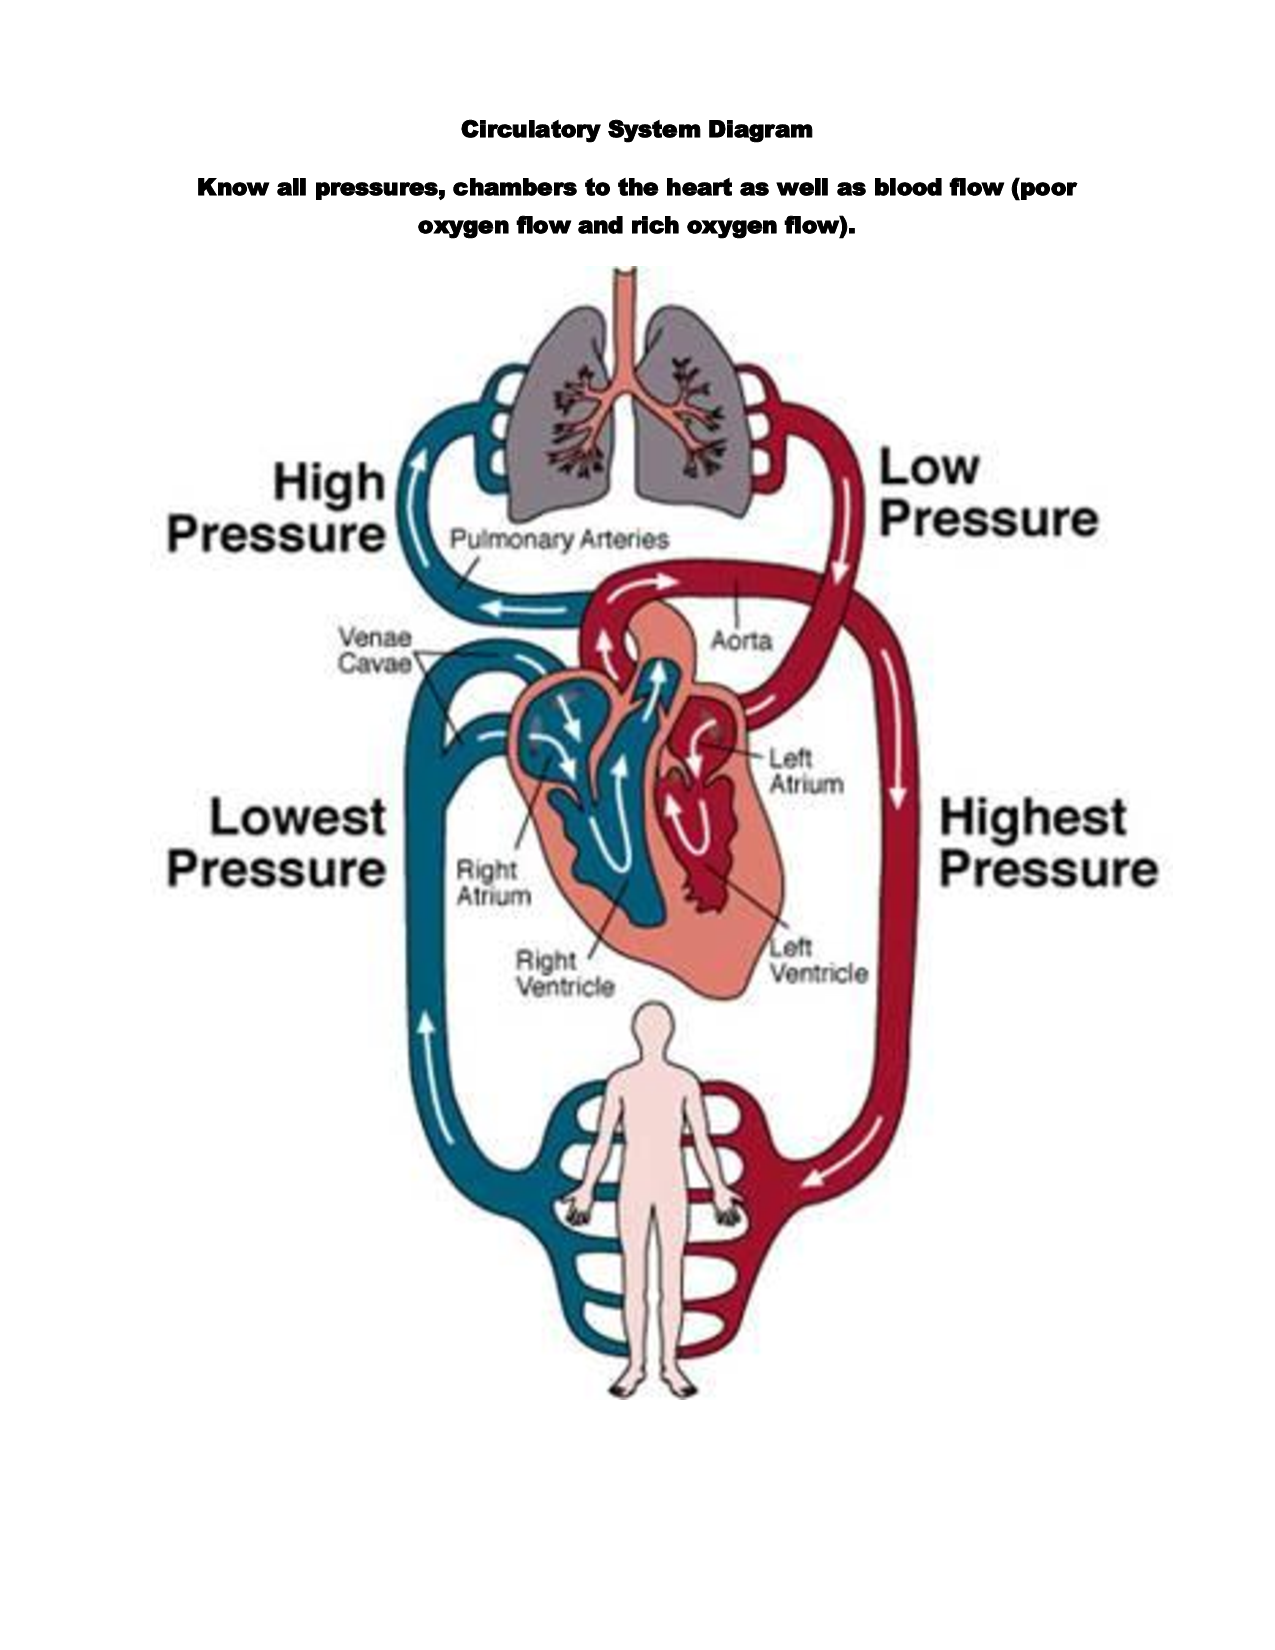 circulatory system through external respirtaion a gas exchange circulatory system through external respirtaion a gas exchange occurs betweem pulmonary blood and alveoli